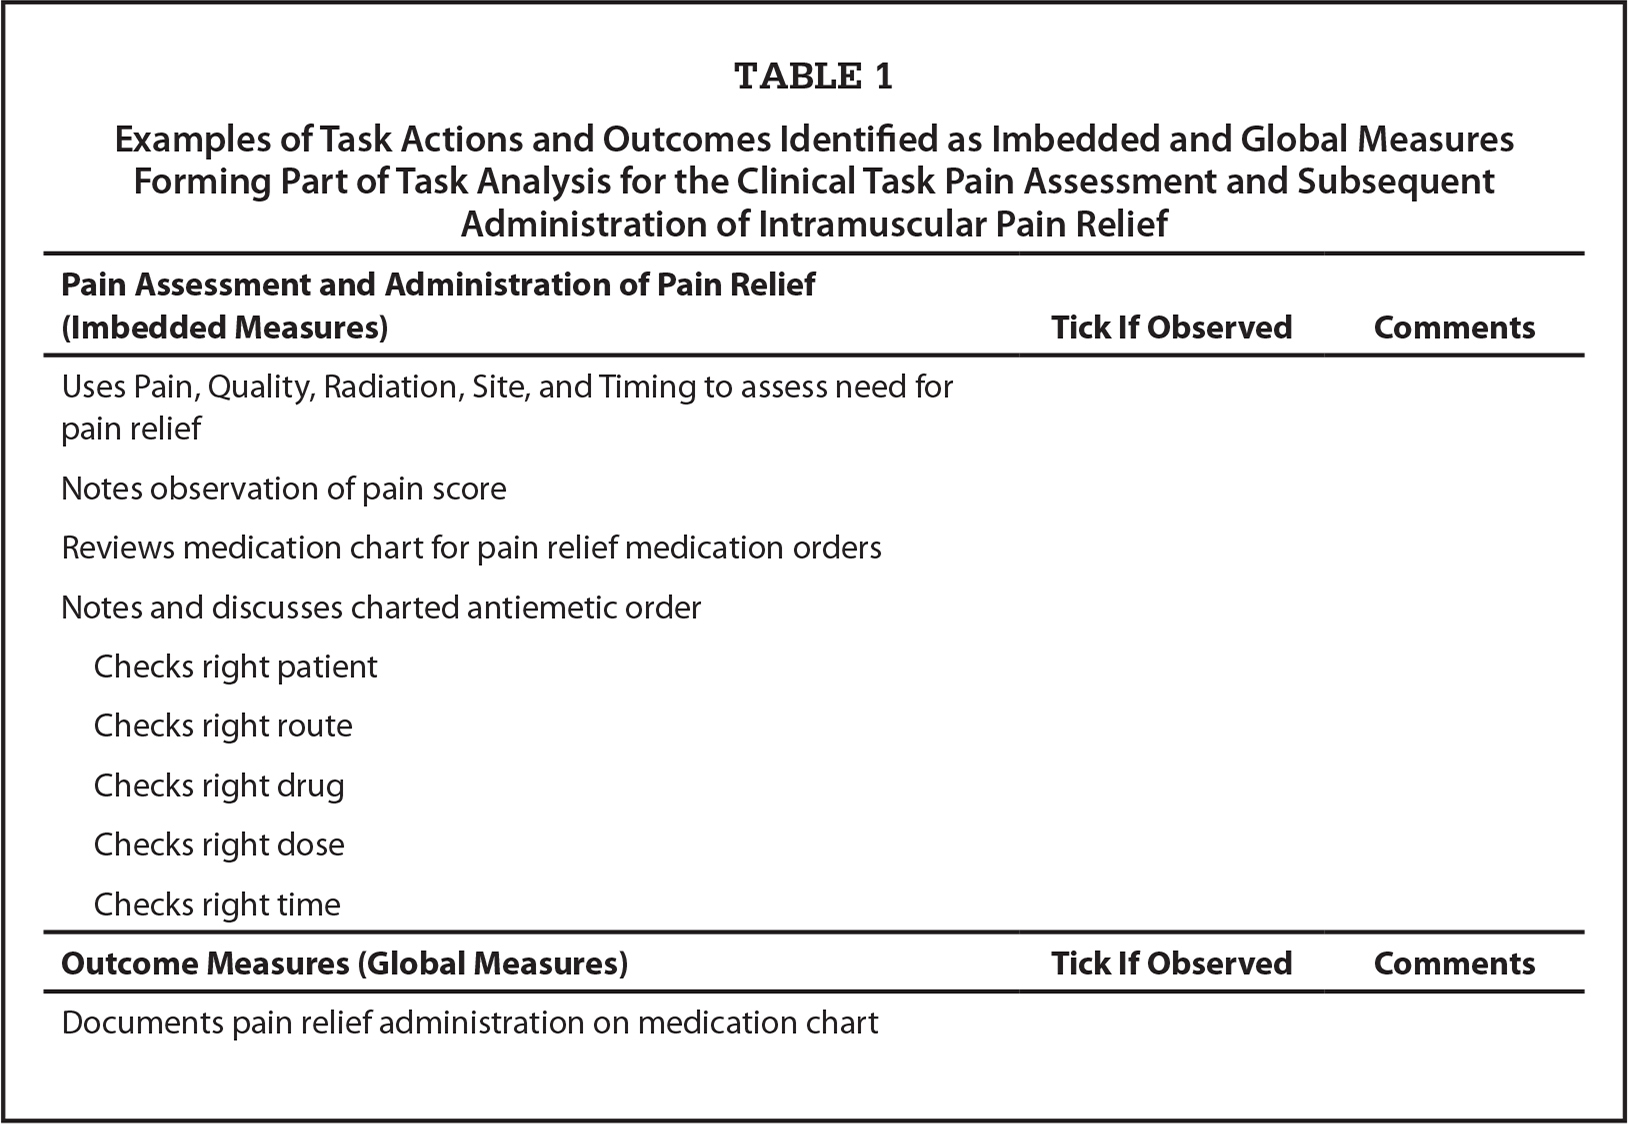 Examples of Task Actions and Outcomes Identified as Imbedded and Global Measures Forming Part of Task Analysis for the Clinical Task Pain Assessment and Subsequent Administration of Intramuscular Pain Relief